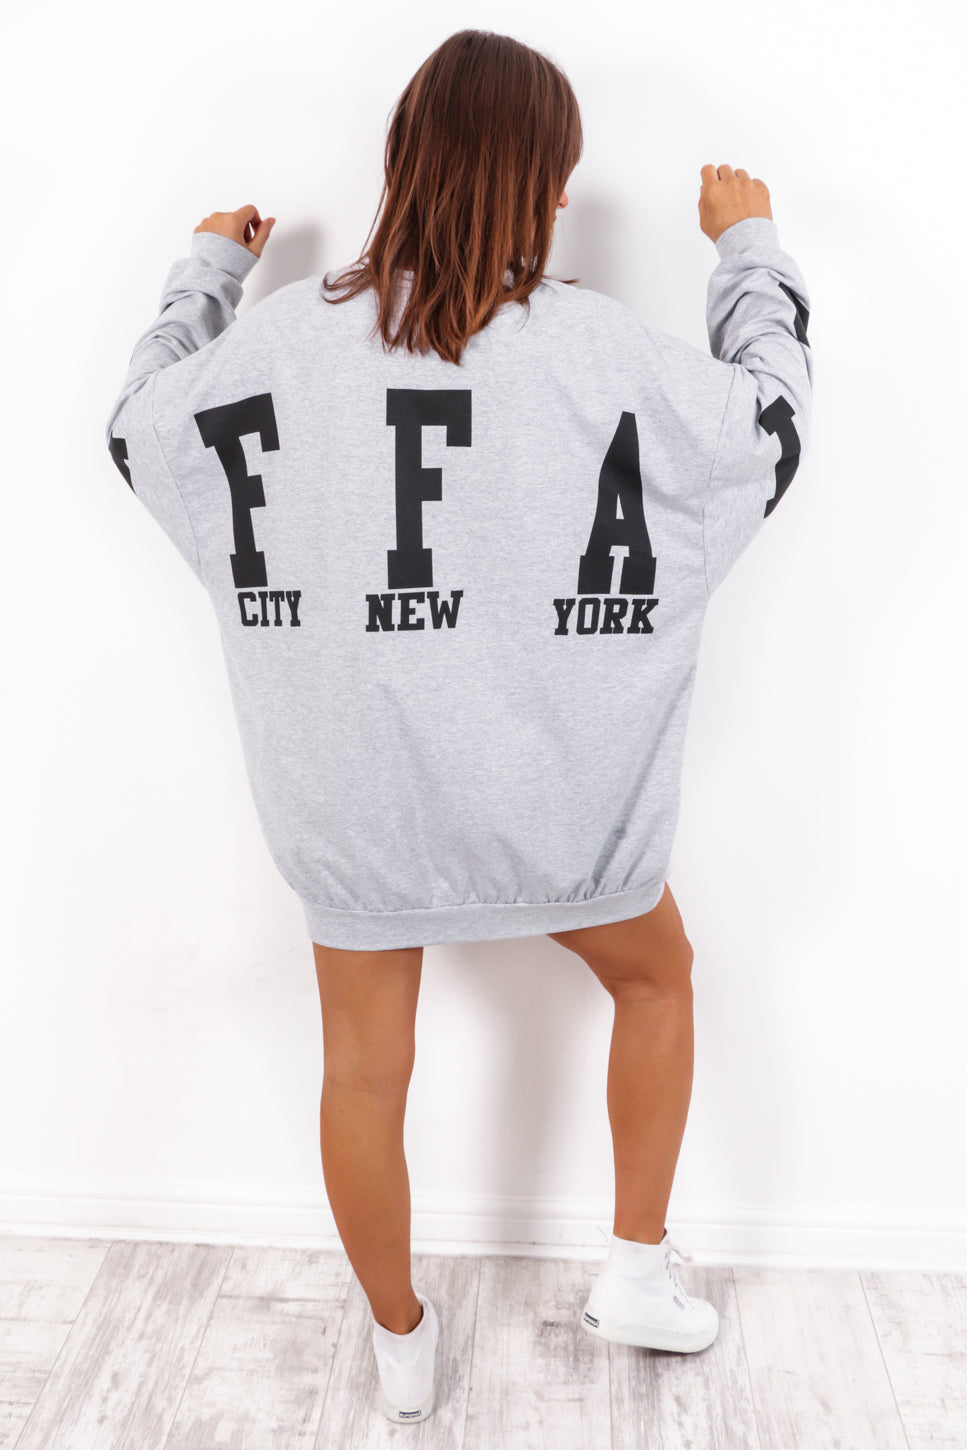 Buffalo City New York - Grey Slogan Jumper Dress